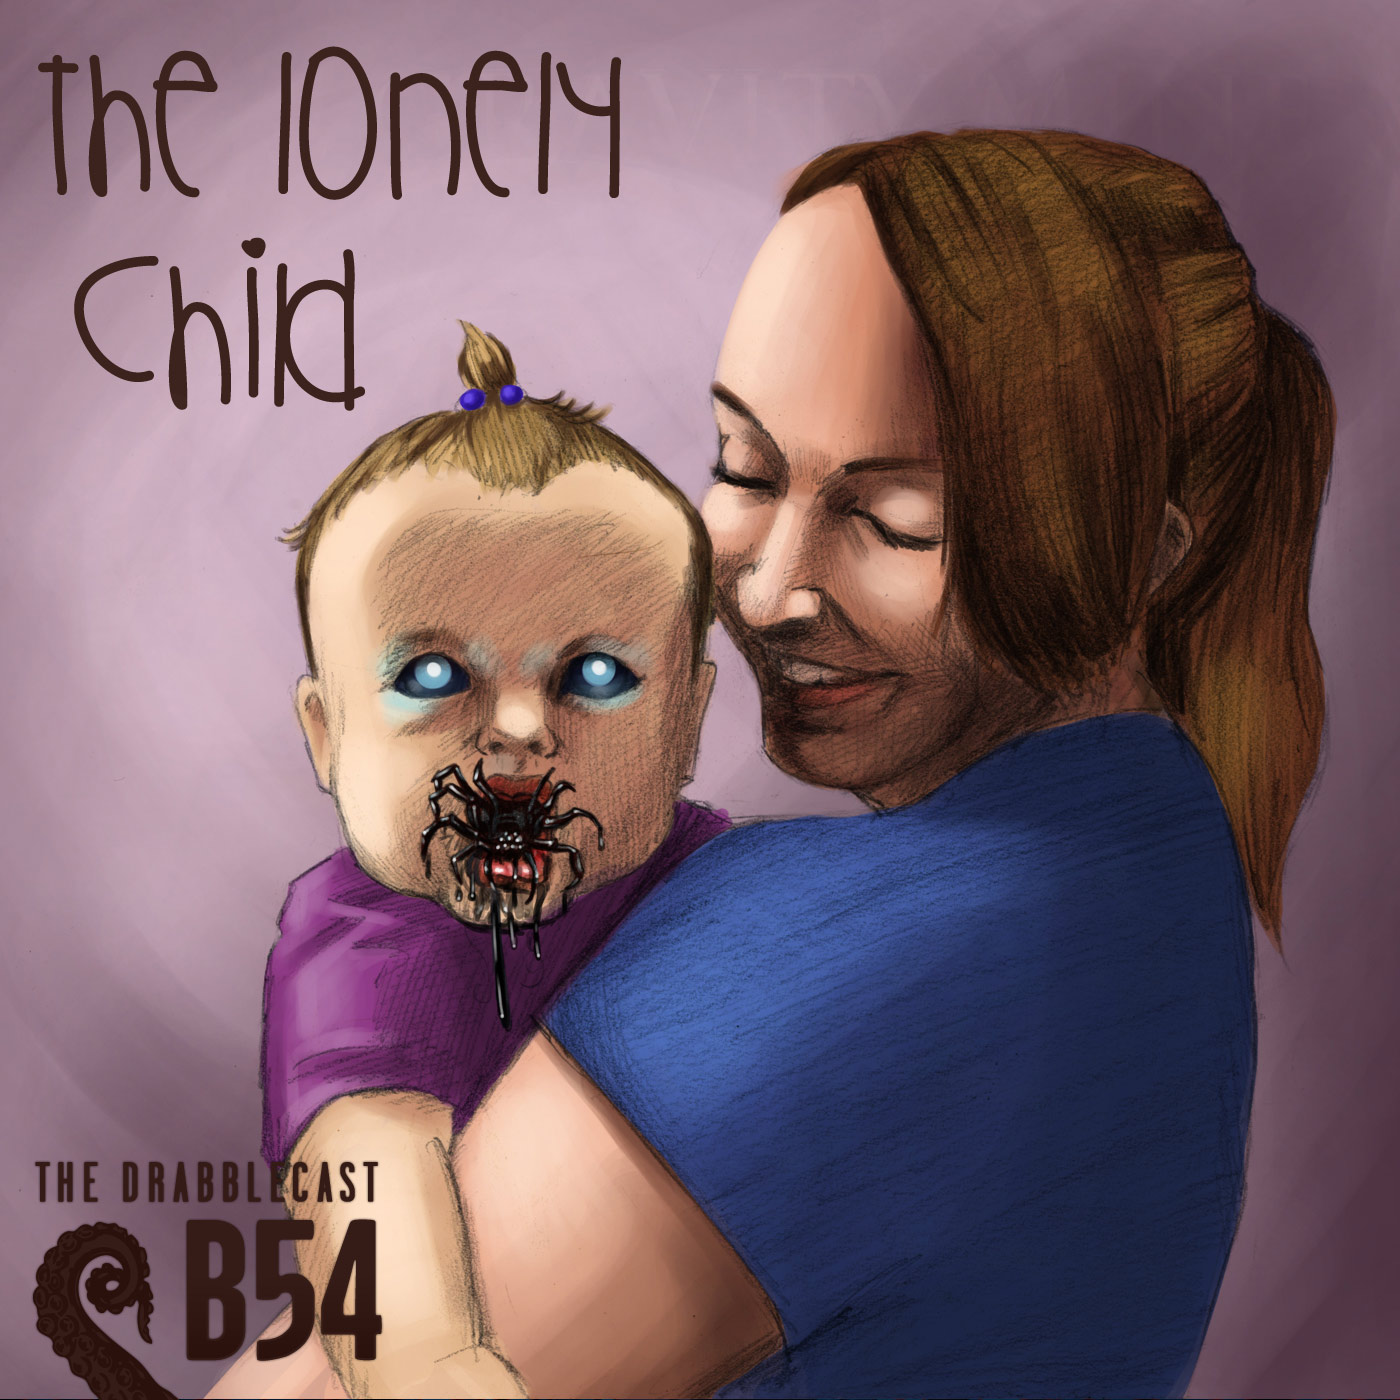 Cover for Drabblecast B-Sides 54, The Lonely Child, by Melissa McClanahan